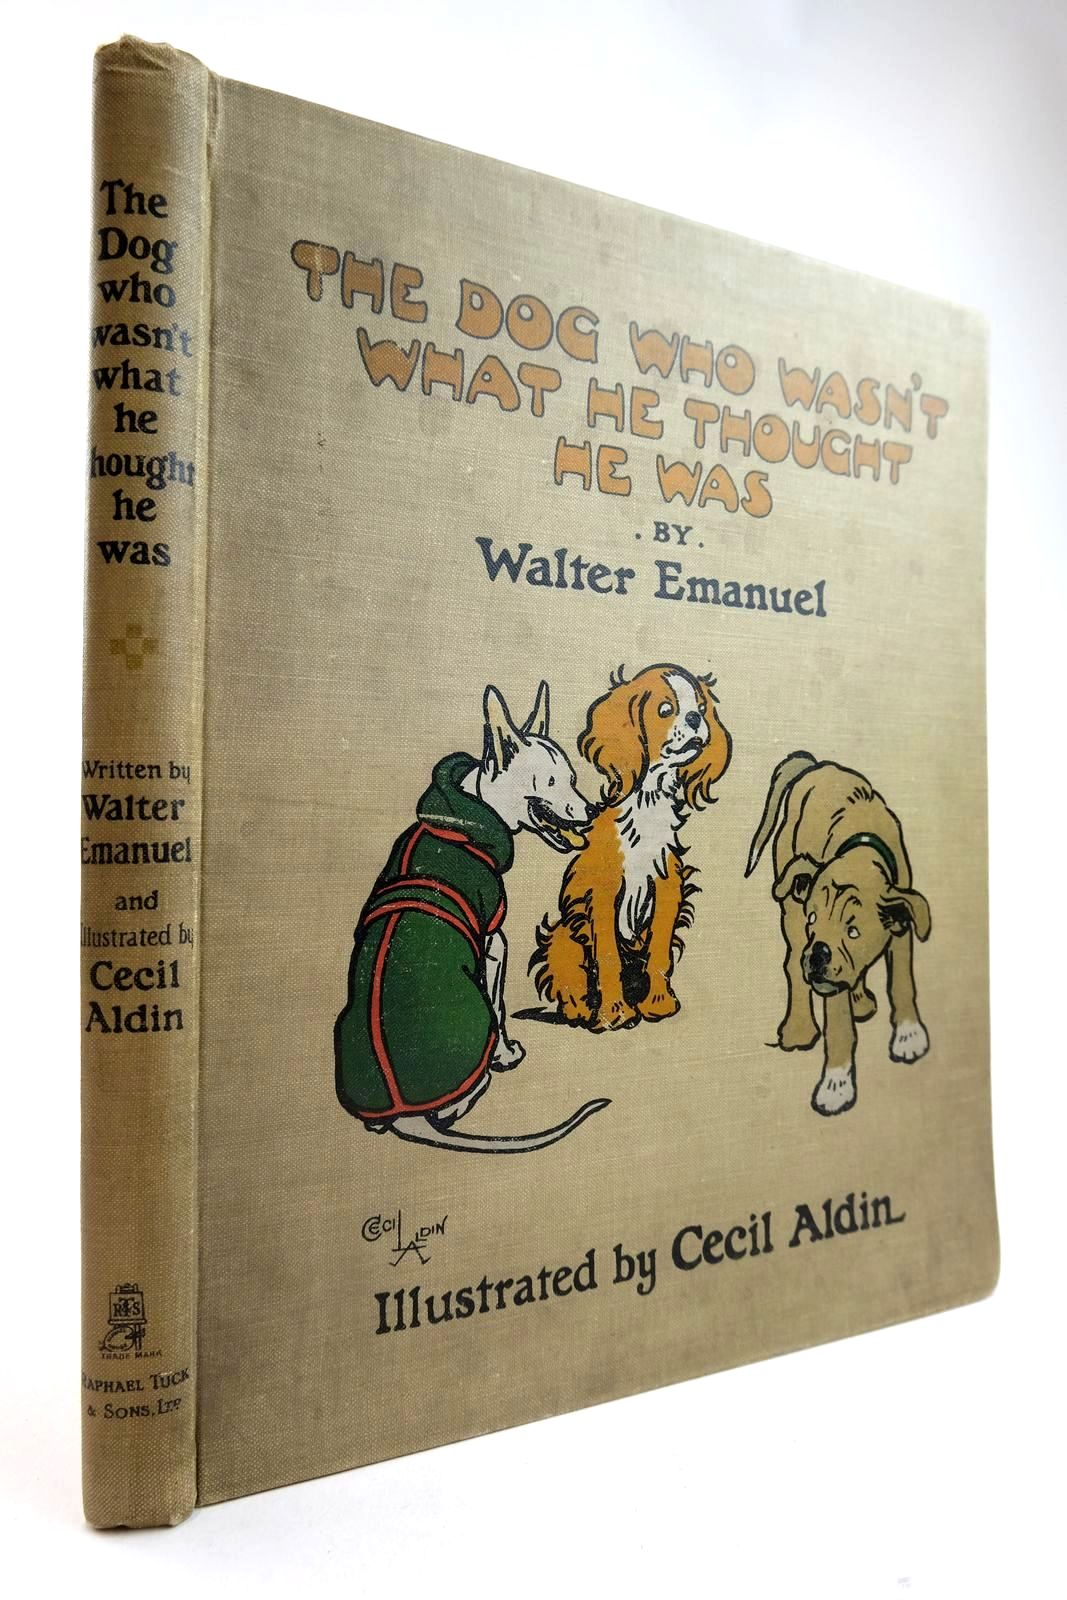 Photo of THE DOG WHO WASN'T WHAT HE THOUGHT HE WAS written by Emanuel, Walter illustrated by Aldin, Cecil published by Raphael Tuck & Sons Ltd. (STOCK CODE: 2133293)  for sale by Stella & Rose's Books